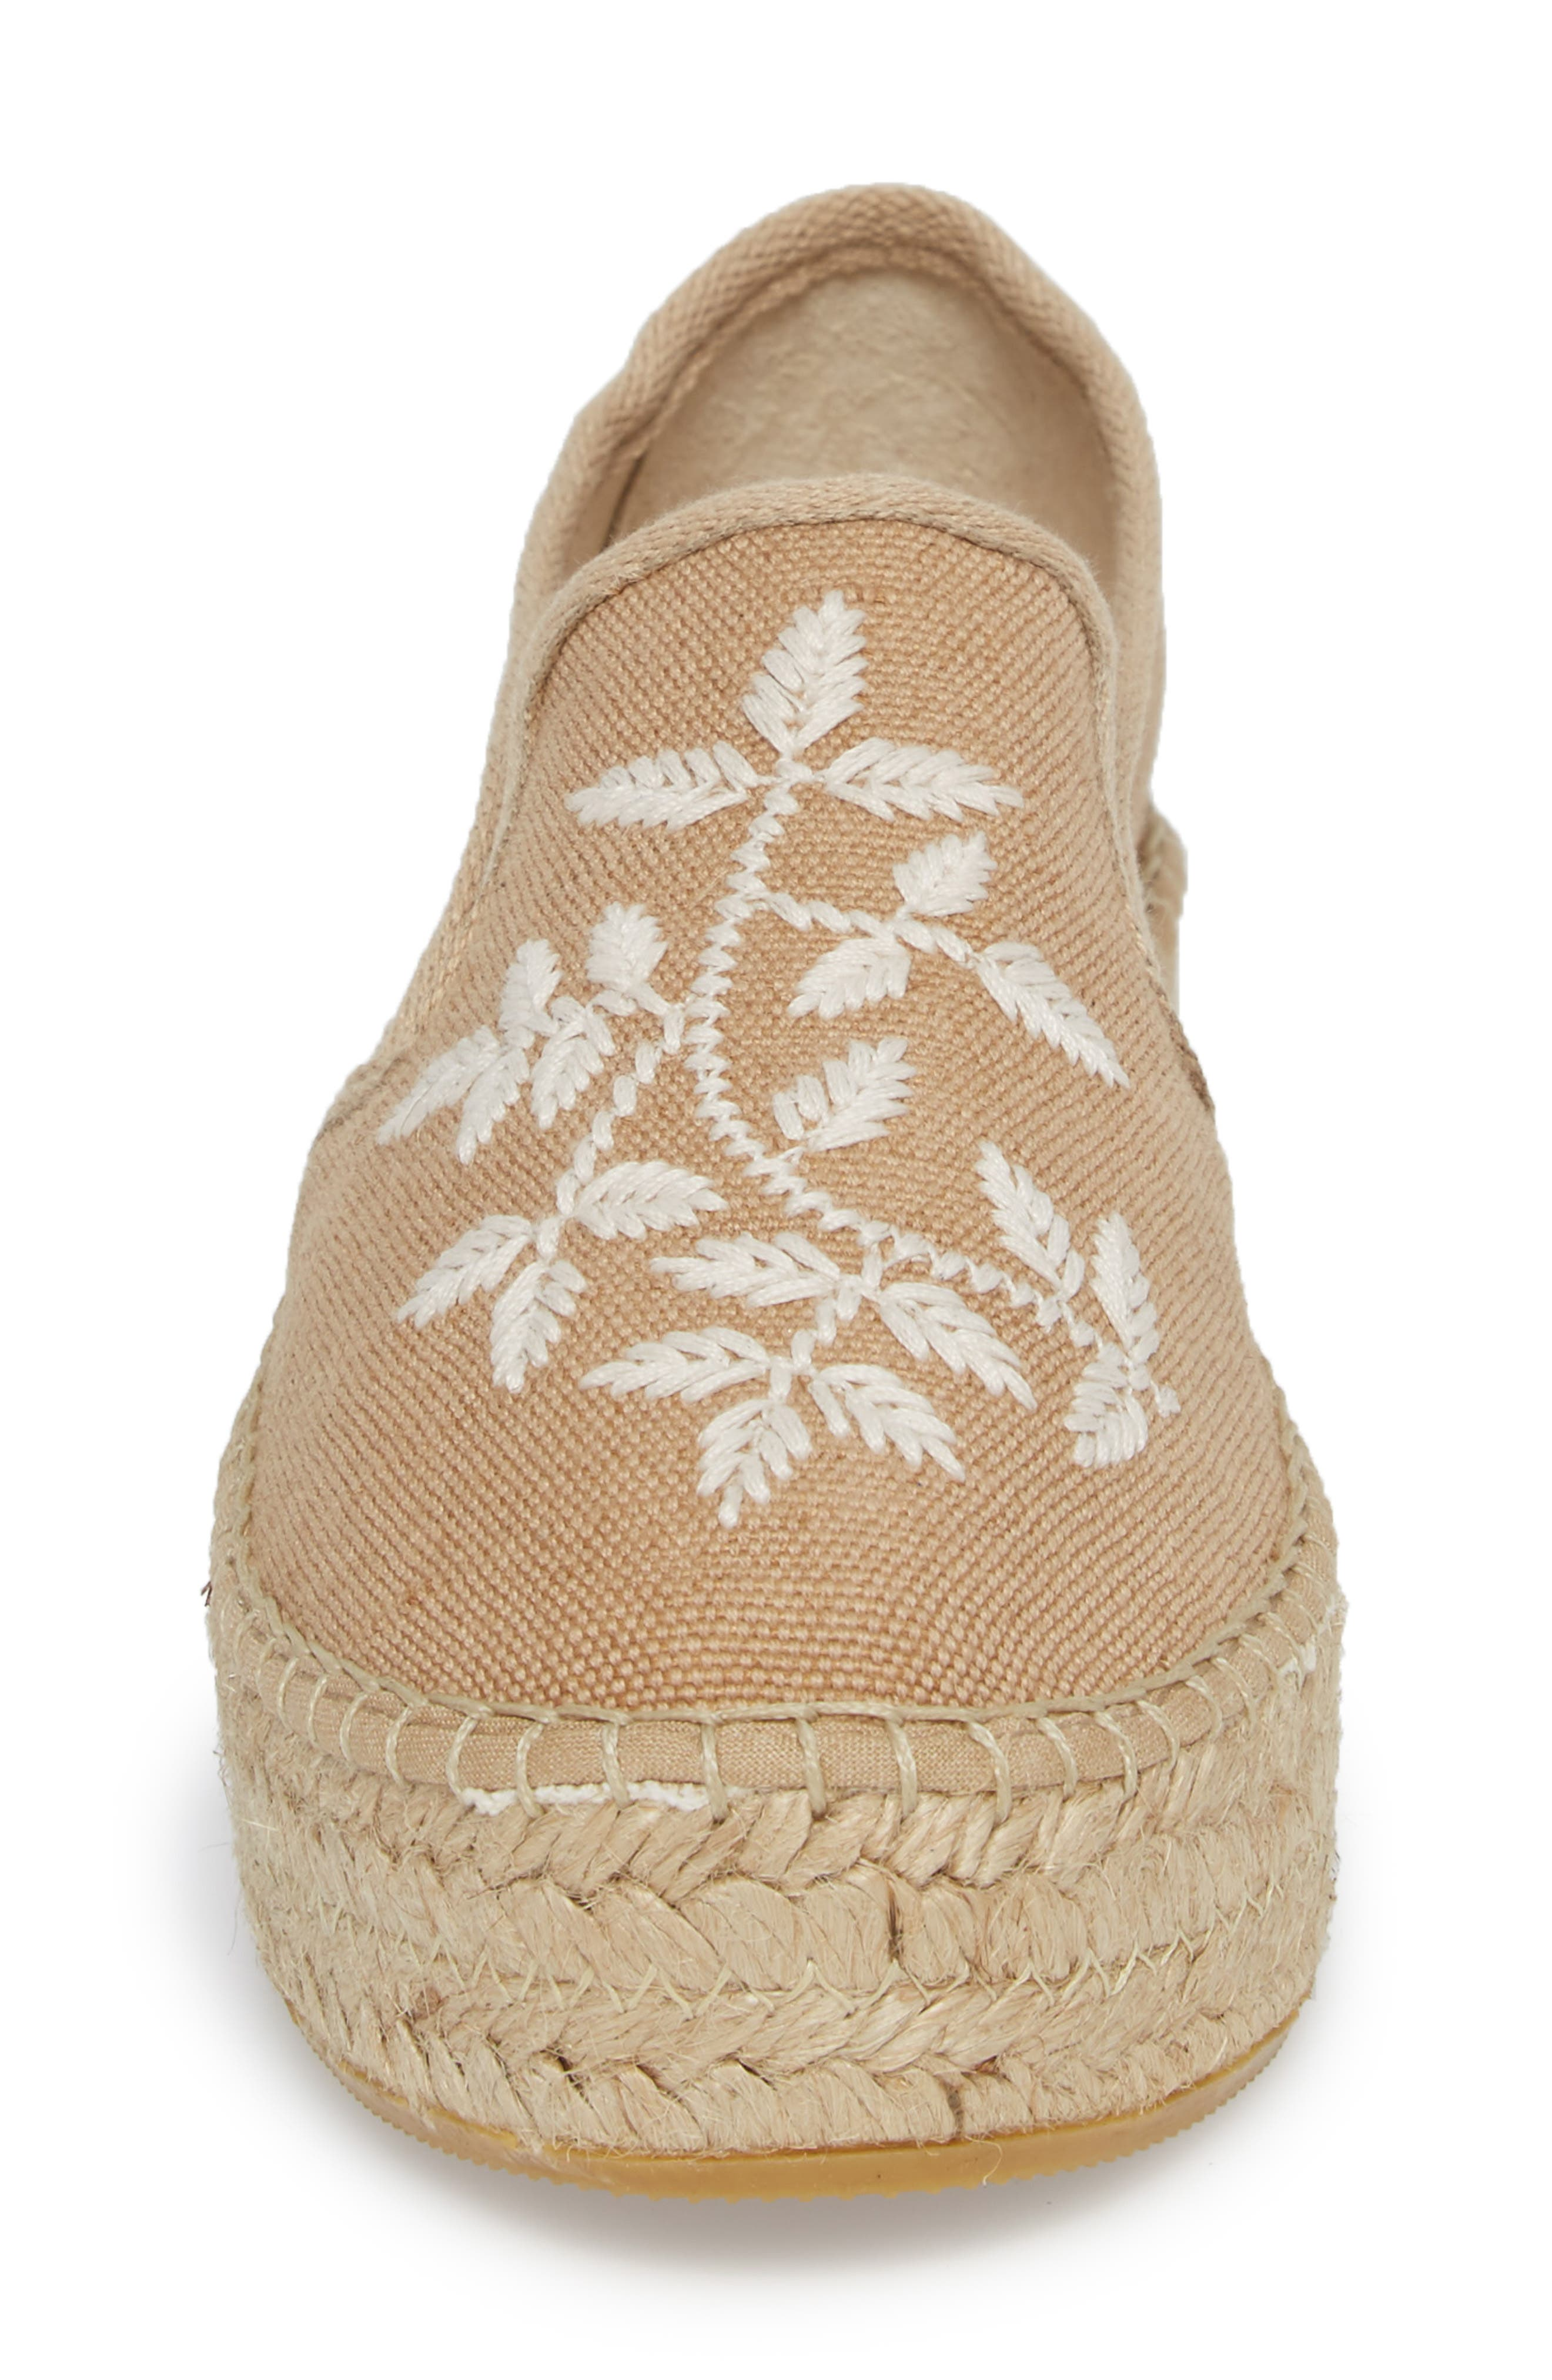 Florence Embroidered Platform Espadrille Sneaker,                             Alternate thumbnail 4, color,                             Tobacco Fabric